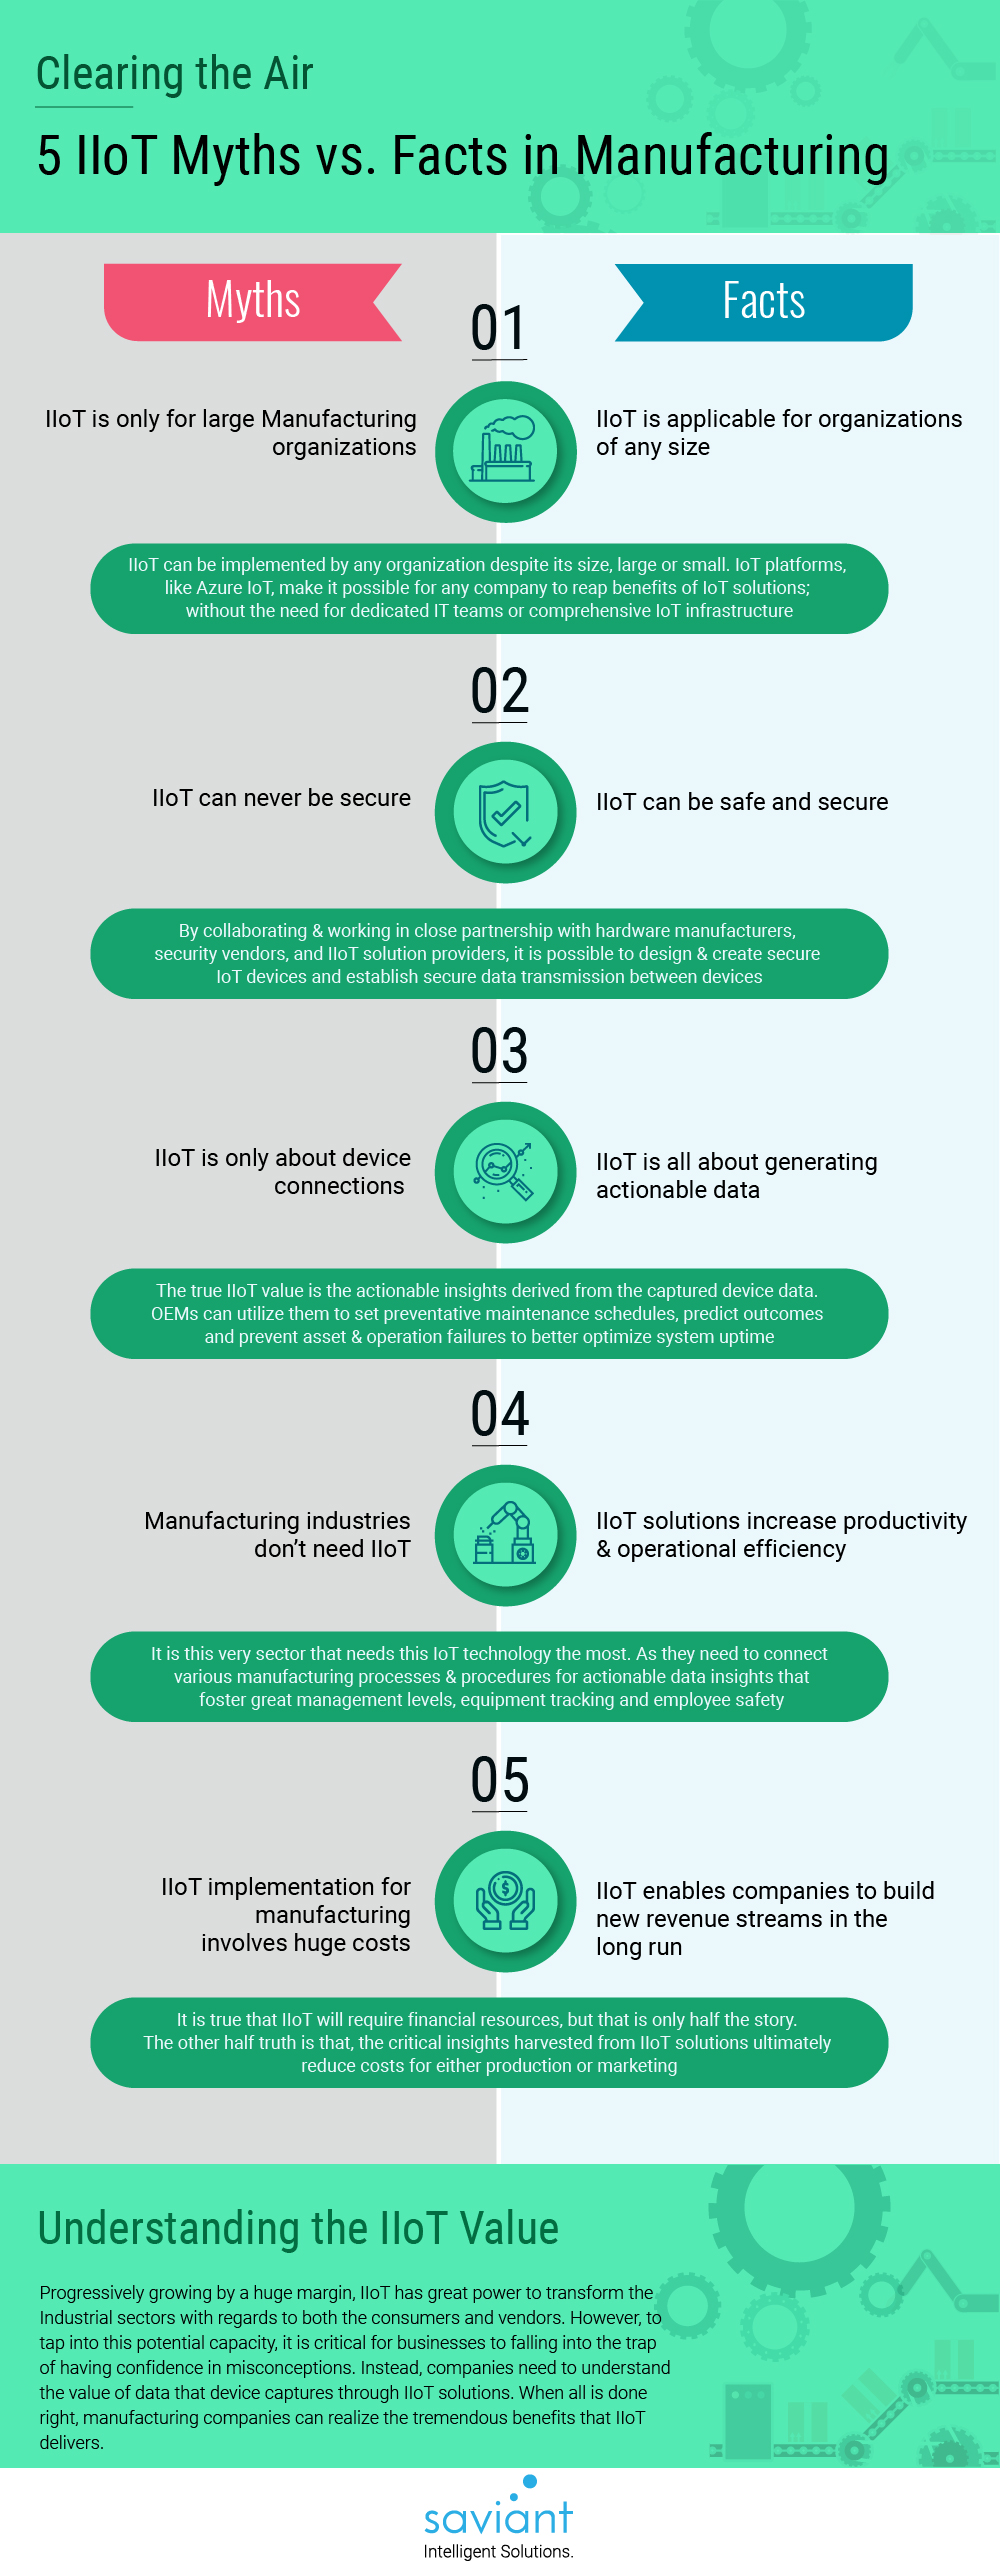 IIoT implementation myths in manufacturing infographic